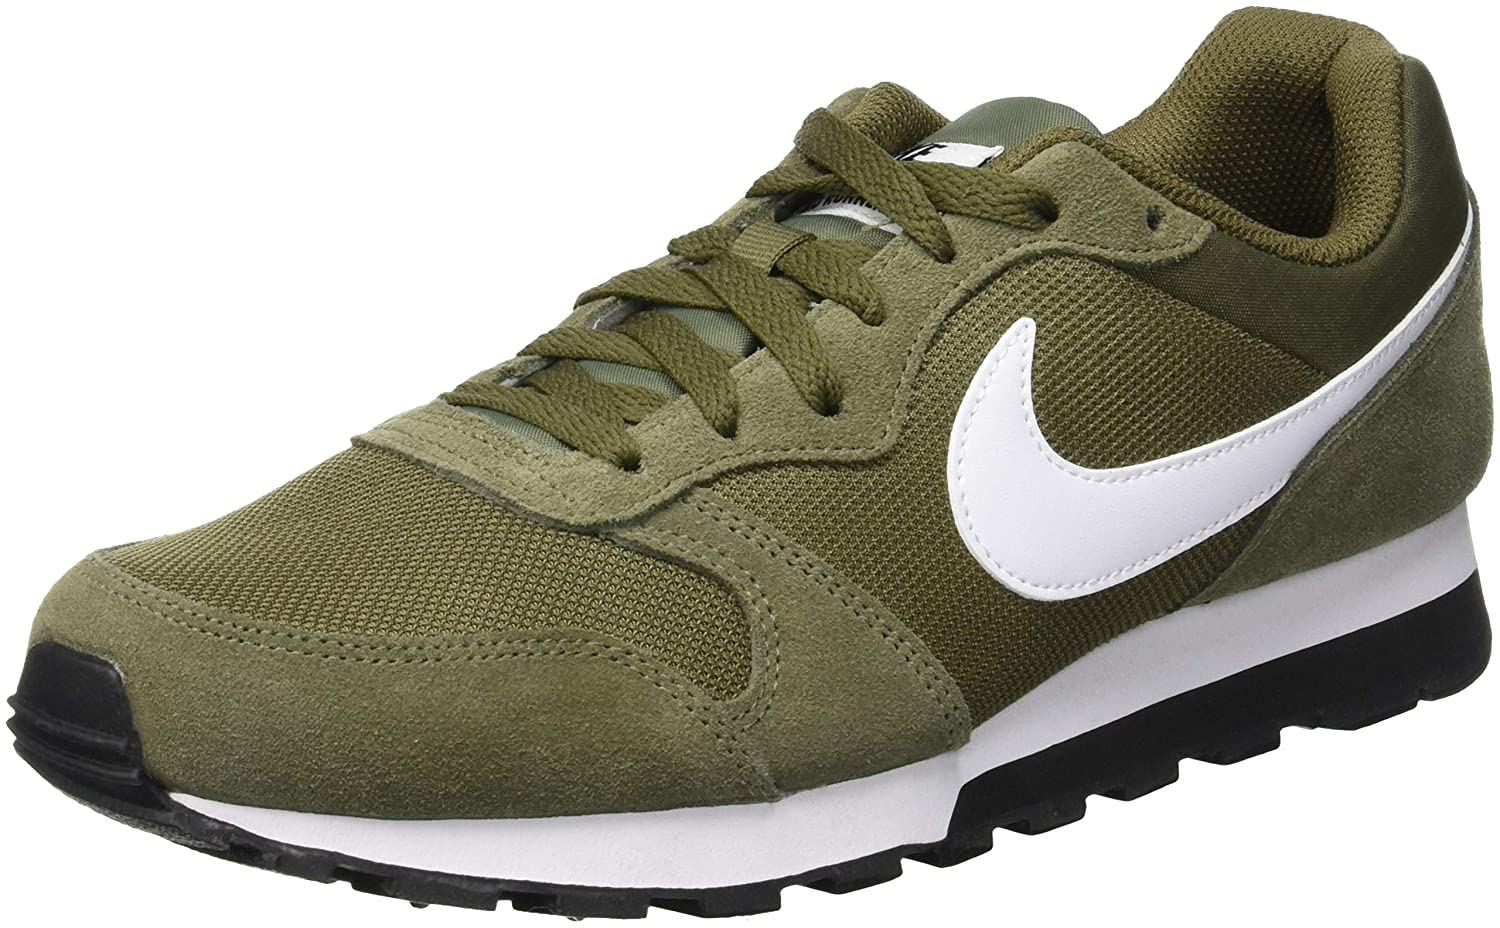 Nike MD Runner 2, Zapatillas de Running para Hombre 38.5 EU|Verde (Medium Olive/White/Black 204)